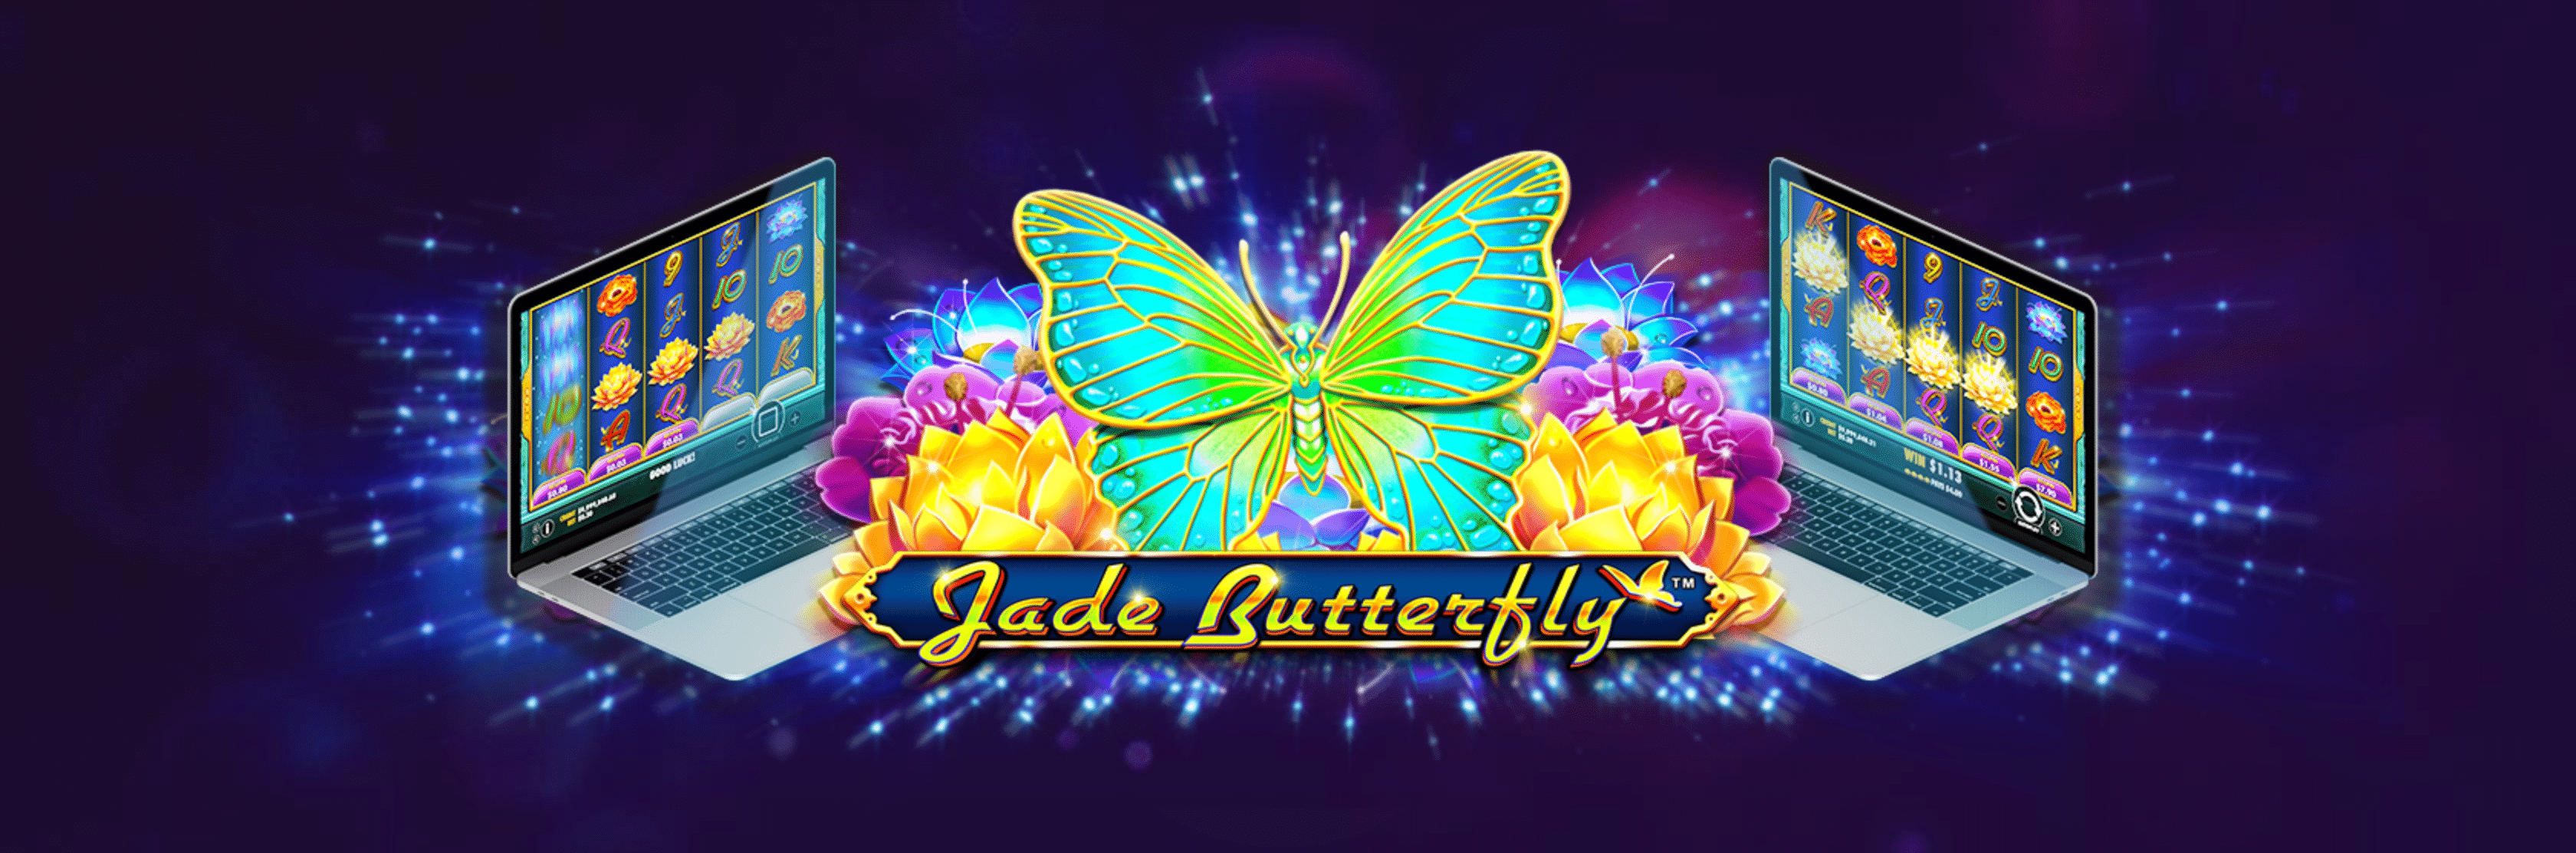 Jade Butterfly från Pragmatic Play